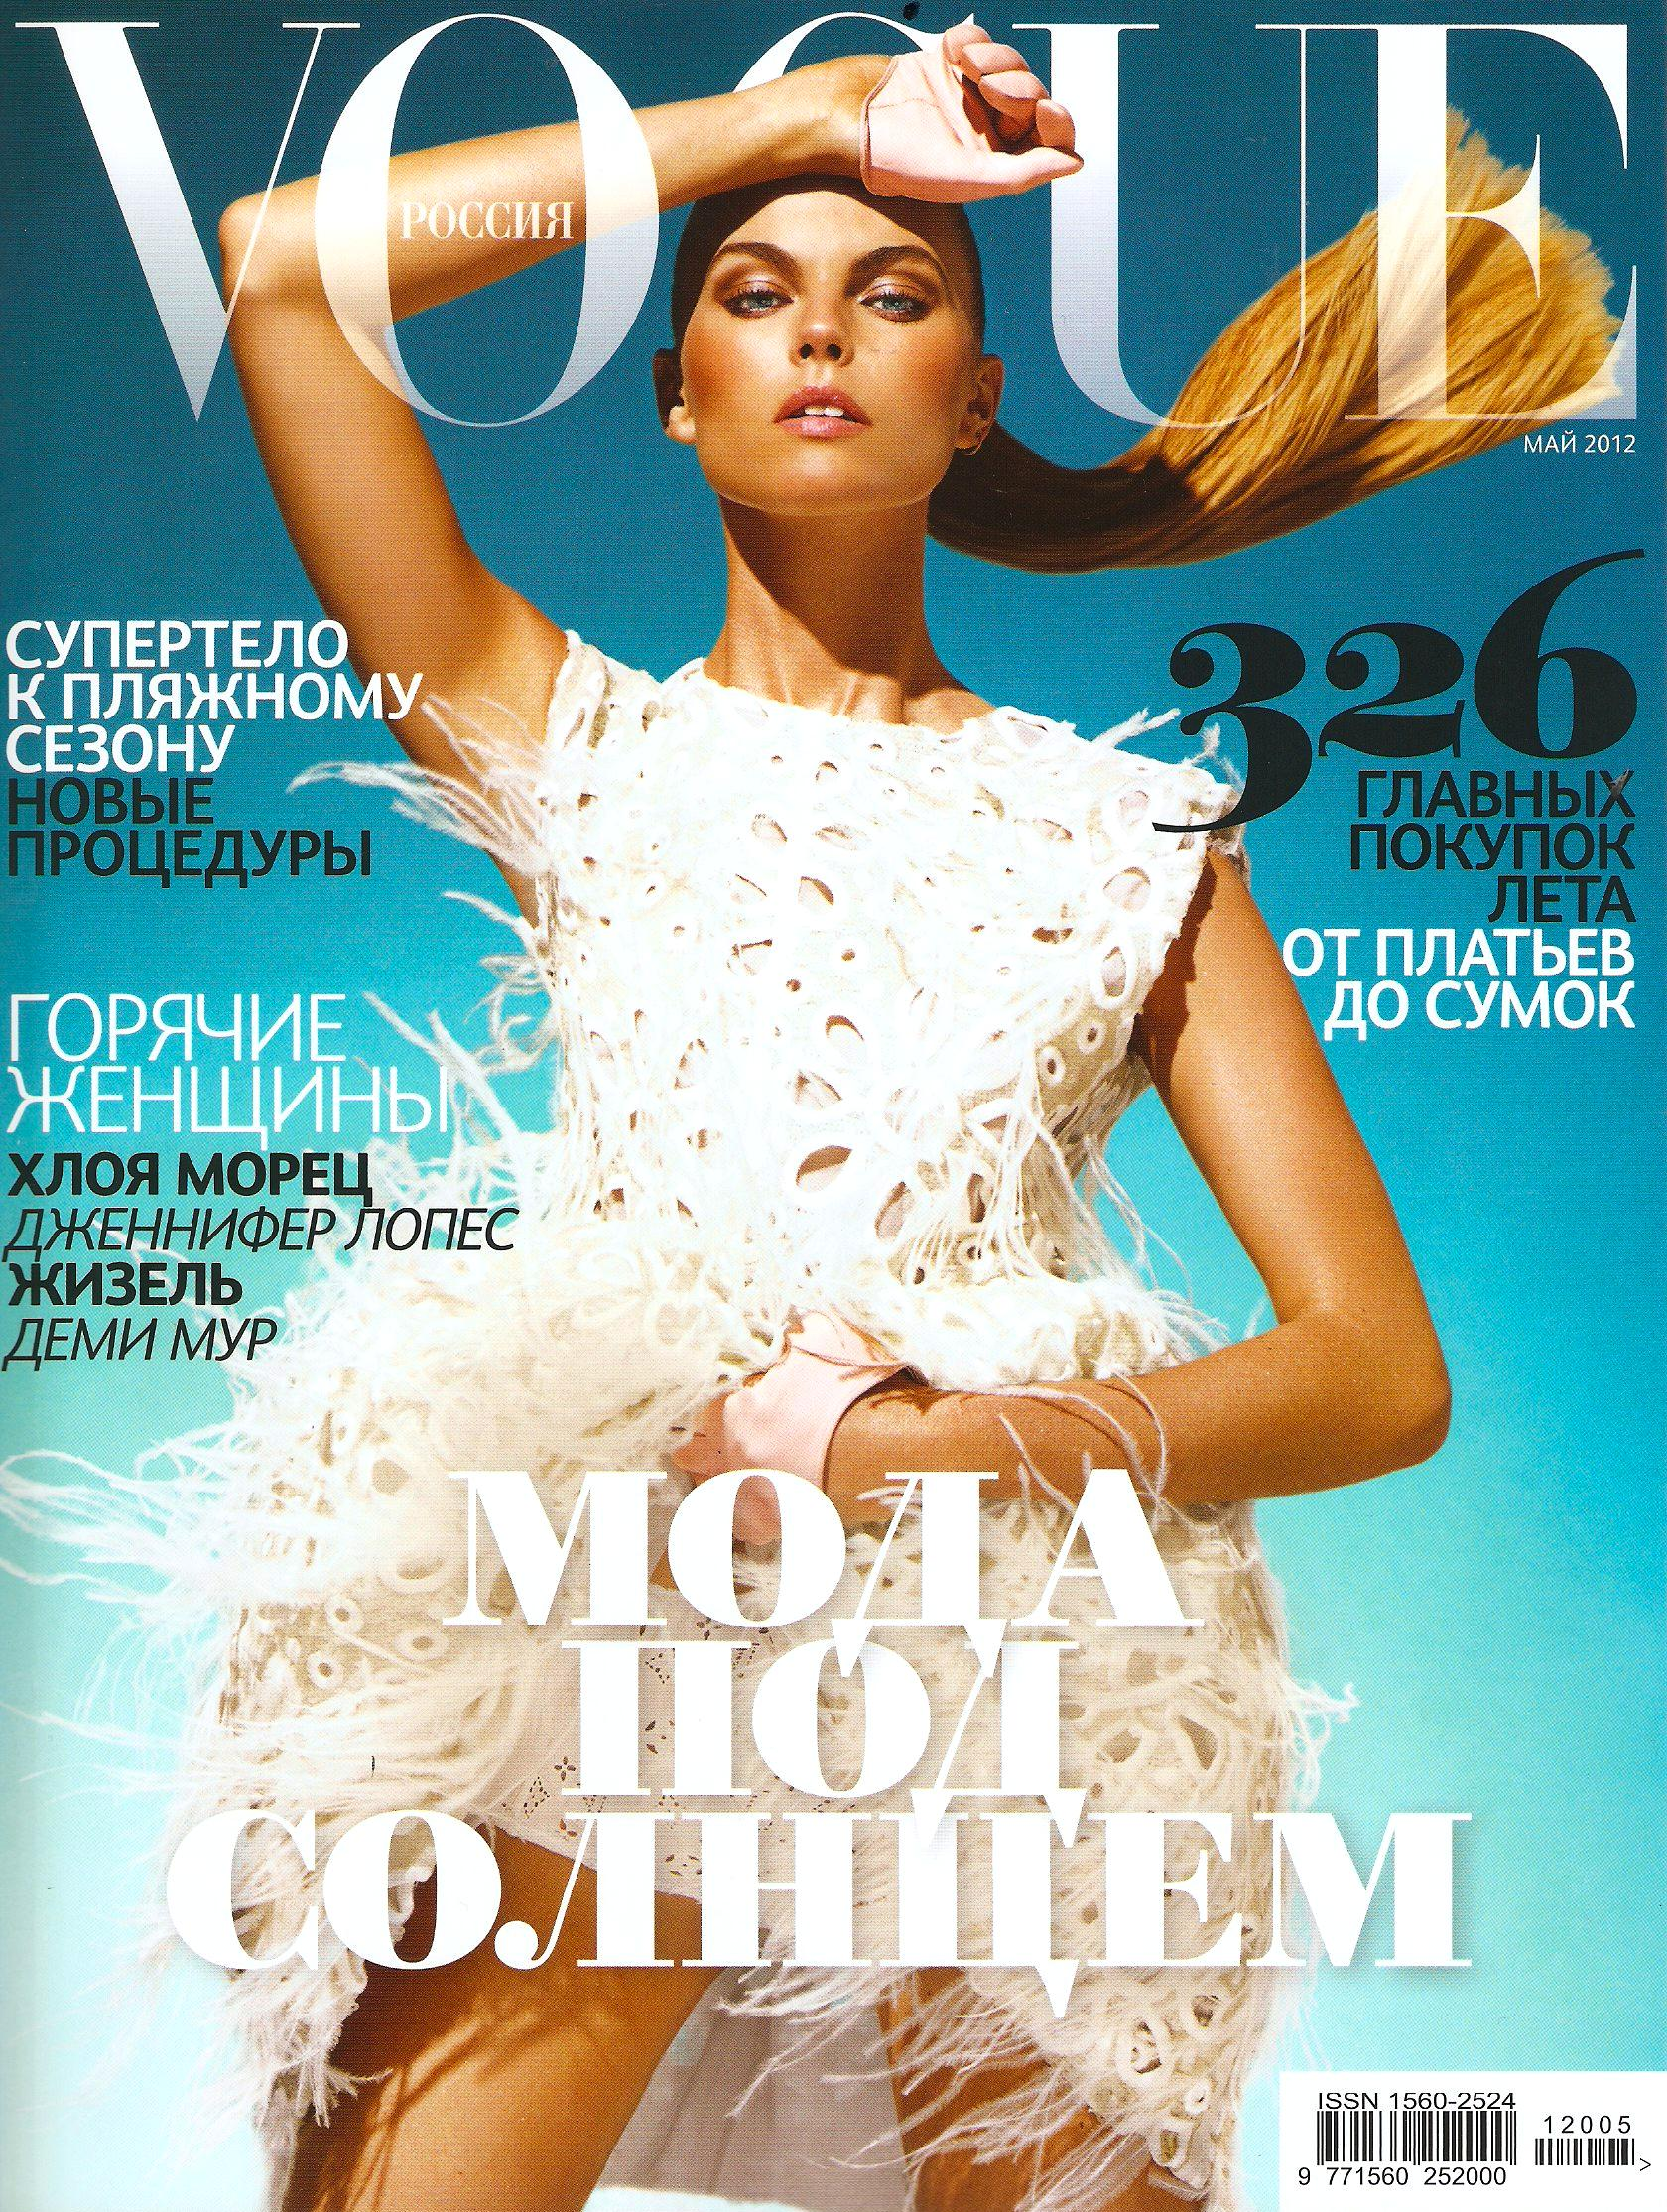 f6e341e233362 KNOW YOUR FASHION HISTORY  Vogue magazine covers 2000-2012 (1680x2229) ...